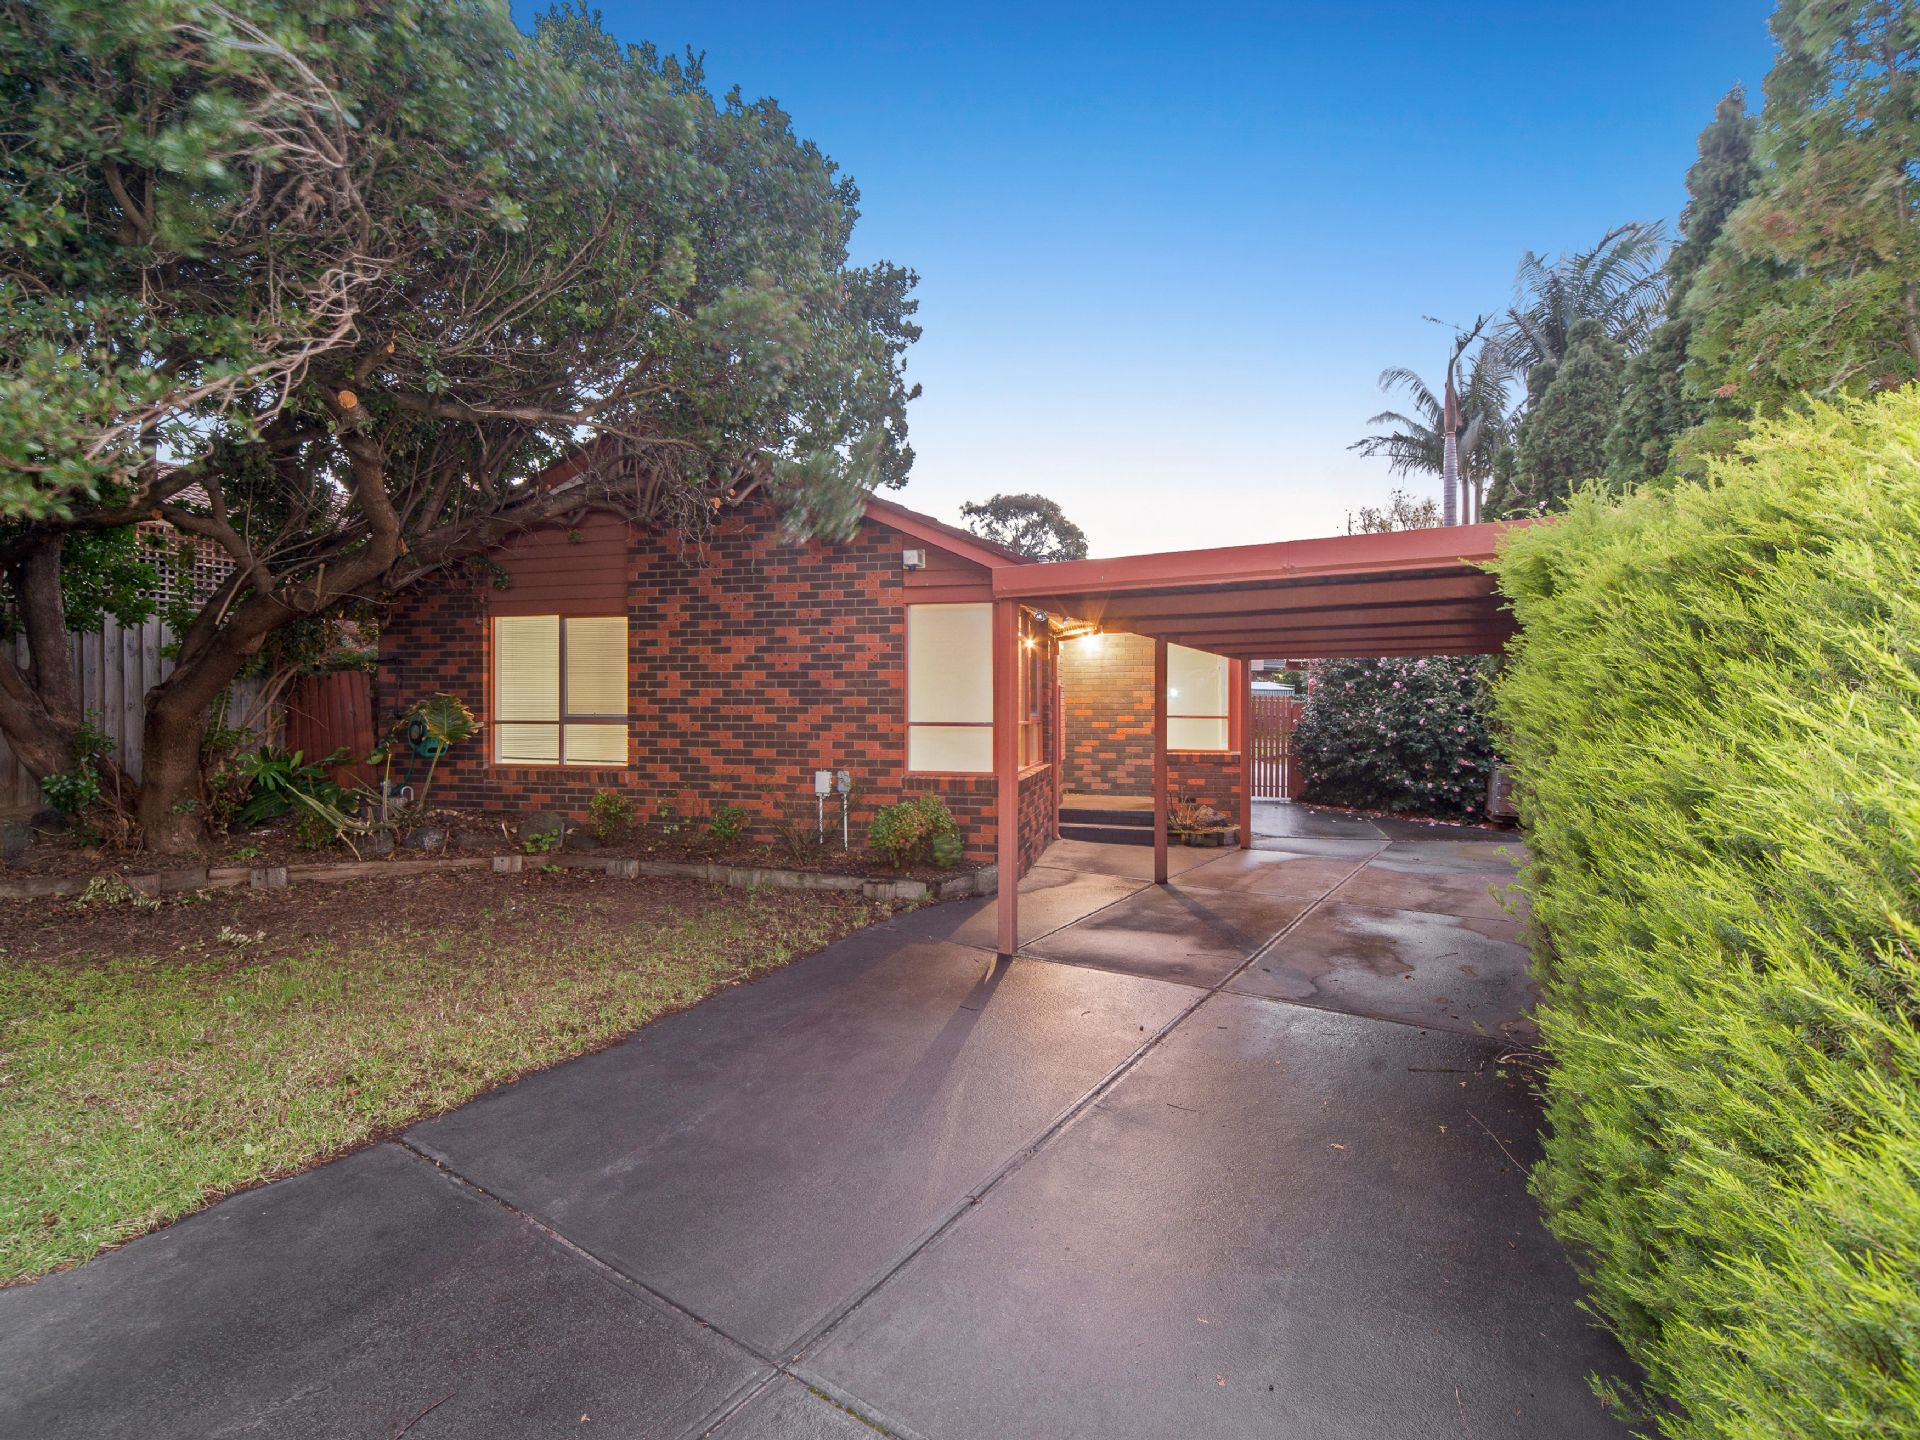 8 Birtinya Court, FRANKSTON, VIC, 3199 - Image